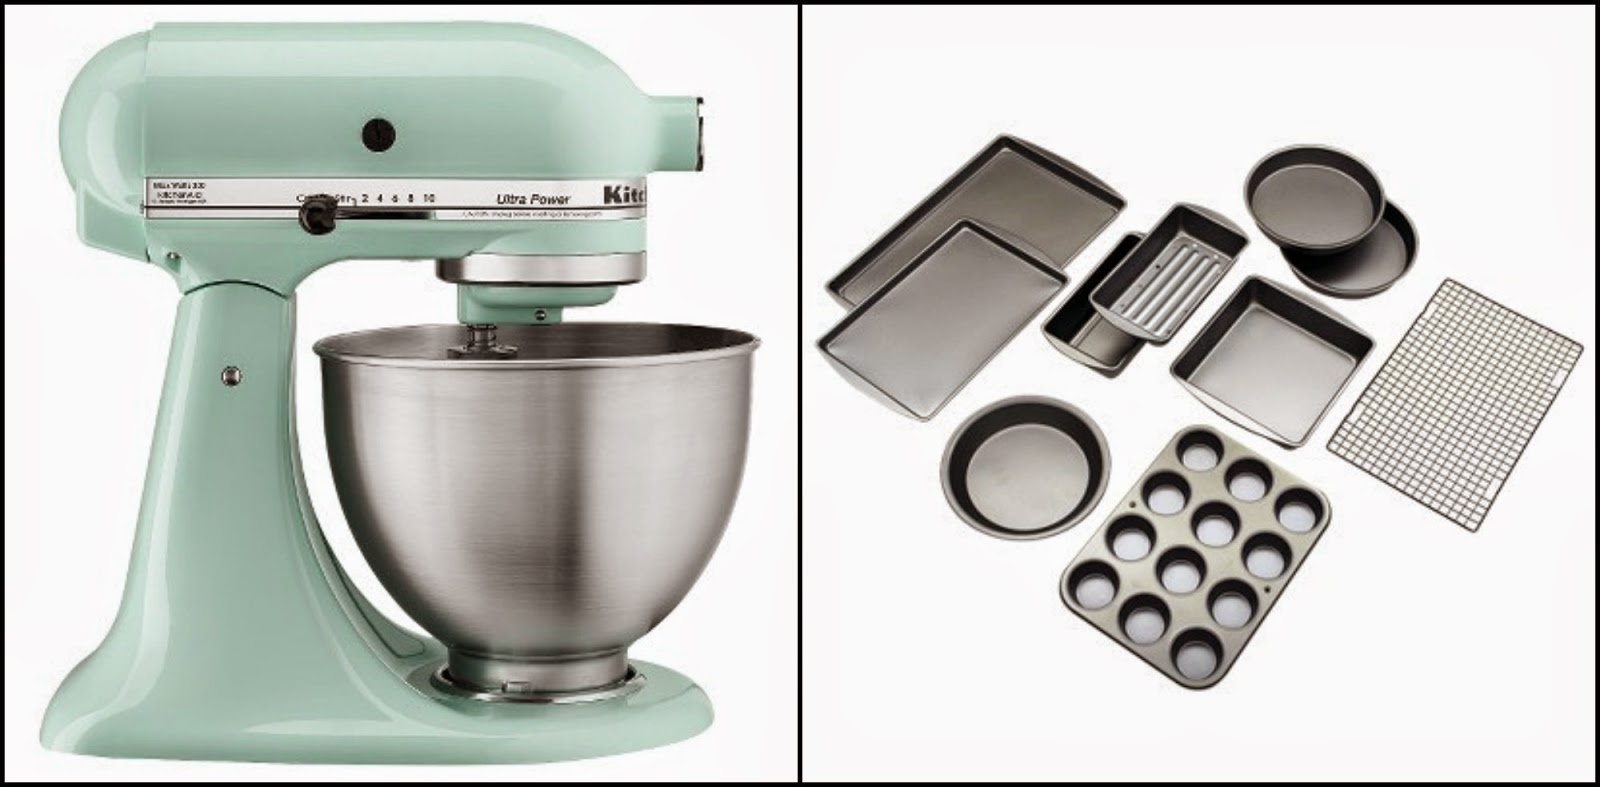 KitchenAid mixer bakeware